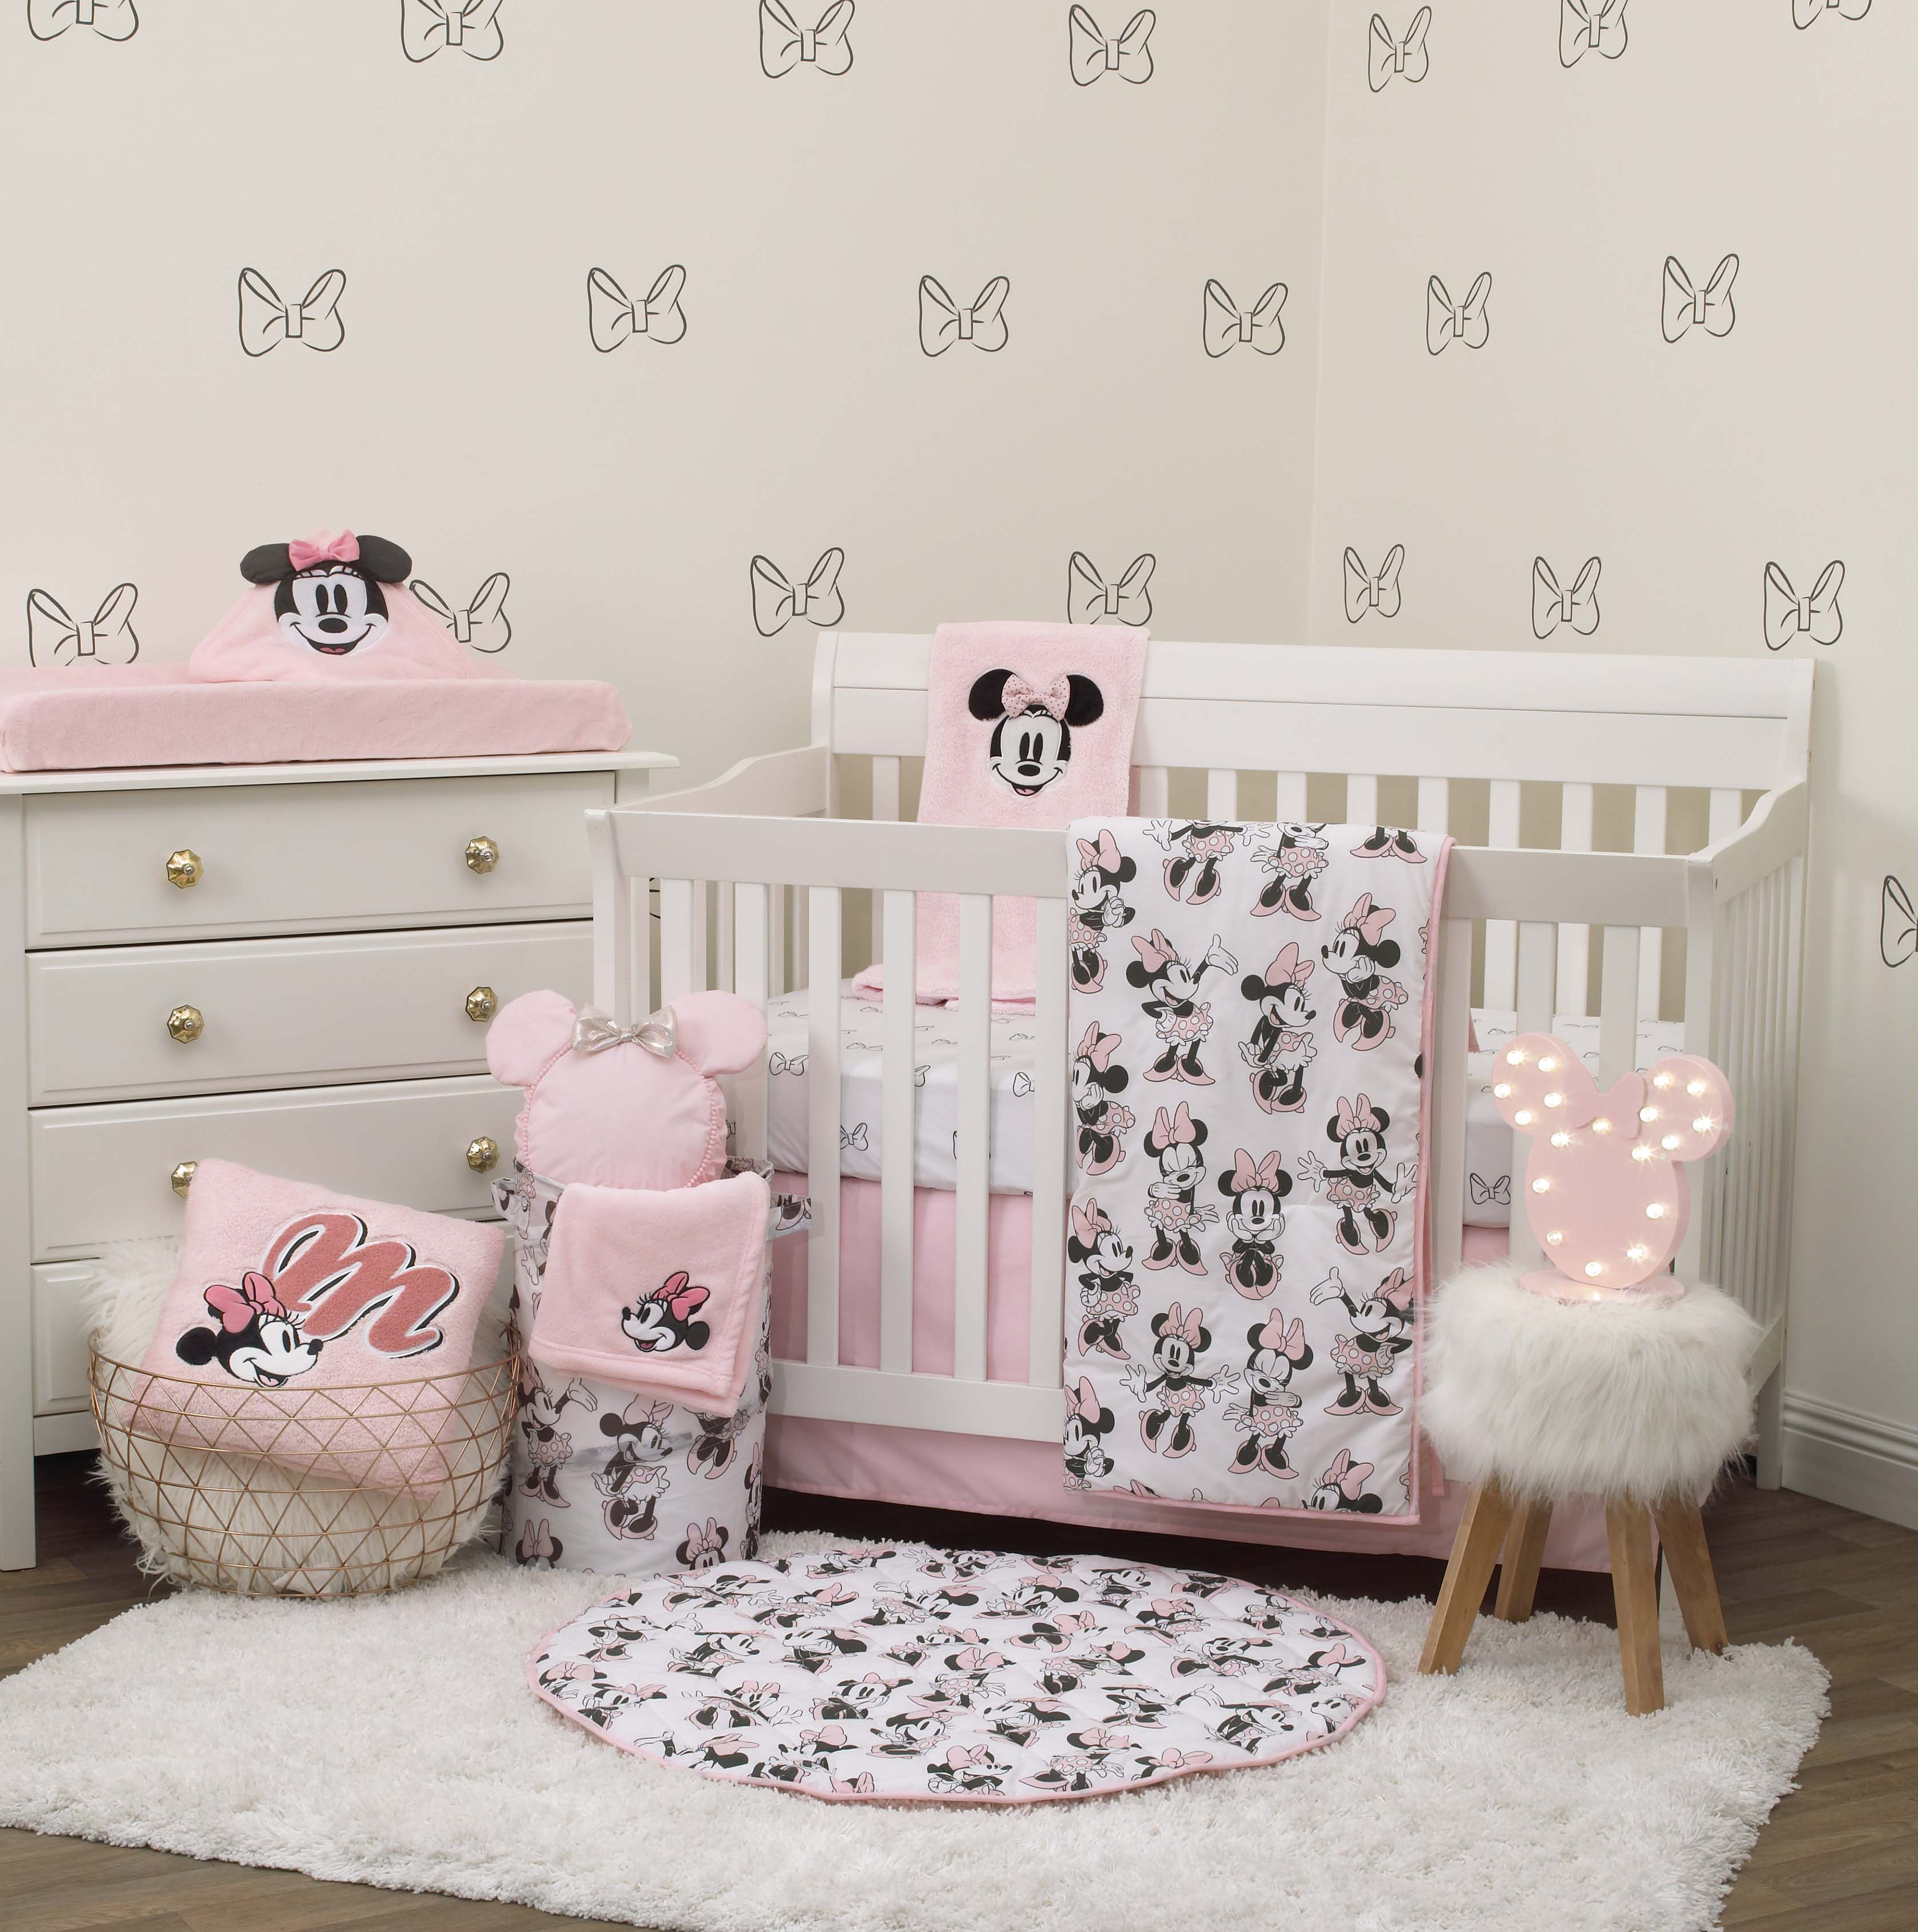 Disney Minnie Mouse 6 Piece Nursery Crib Bedding Set, Comforter, Two 100% Cotton Fitted Crib Sheets, Dust Ruffle, Baby Blanket, Changing Pad Cover, Pink, Grey & White